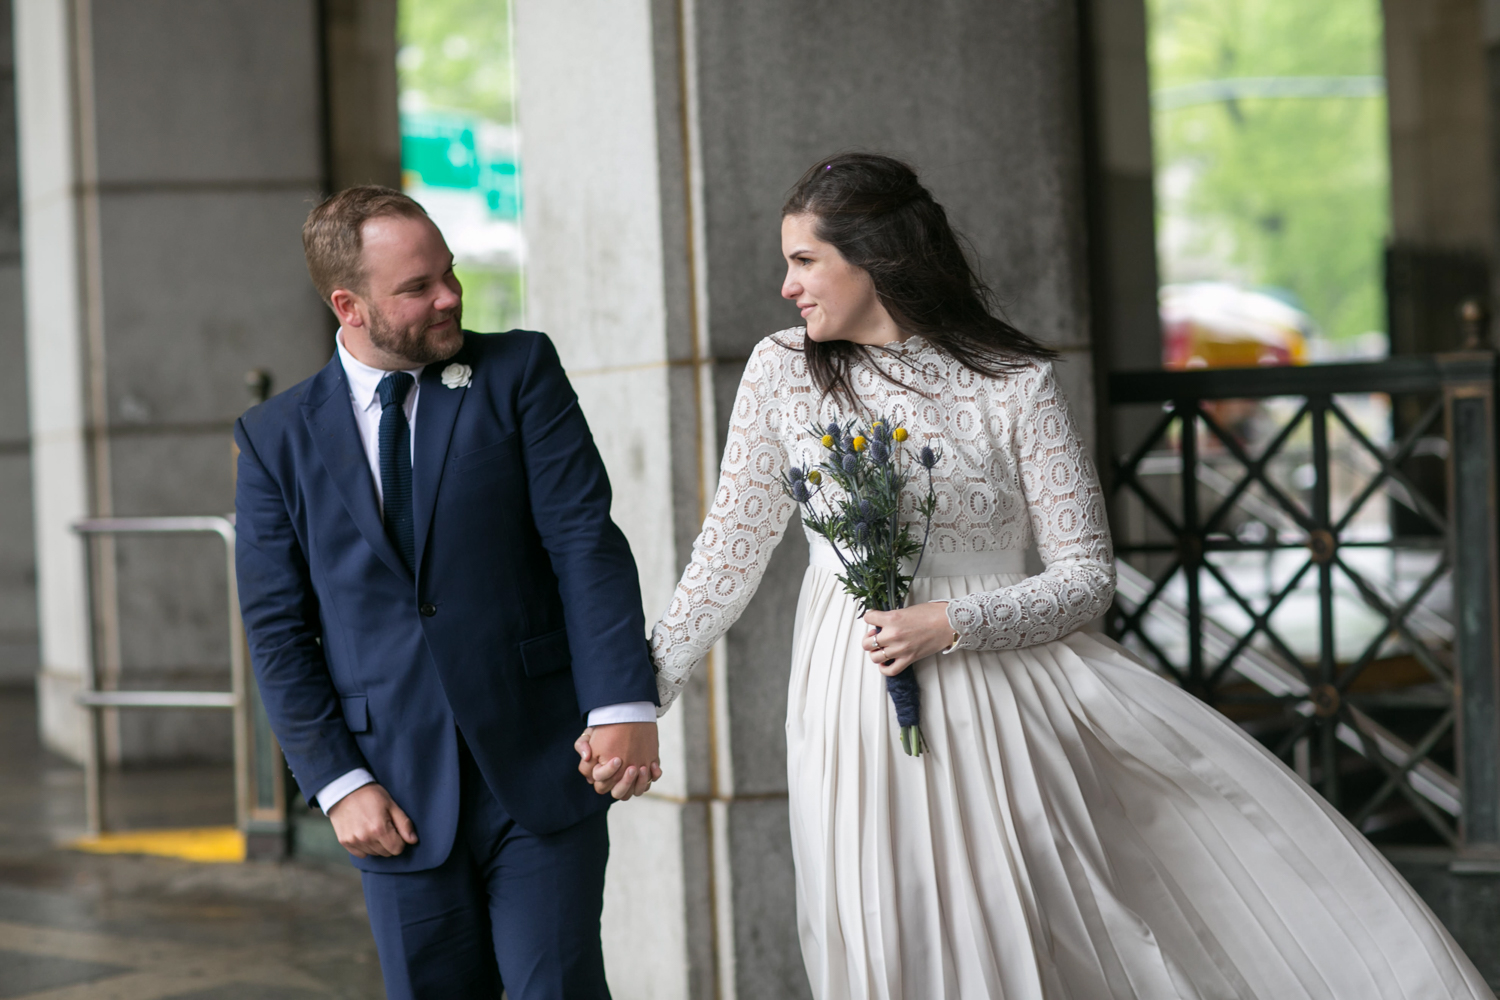 Bride and groom eloped in New York City